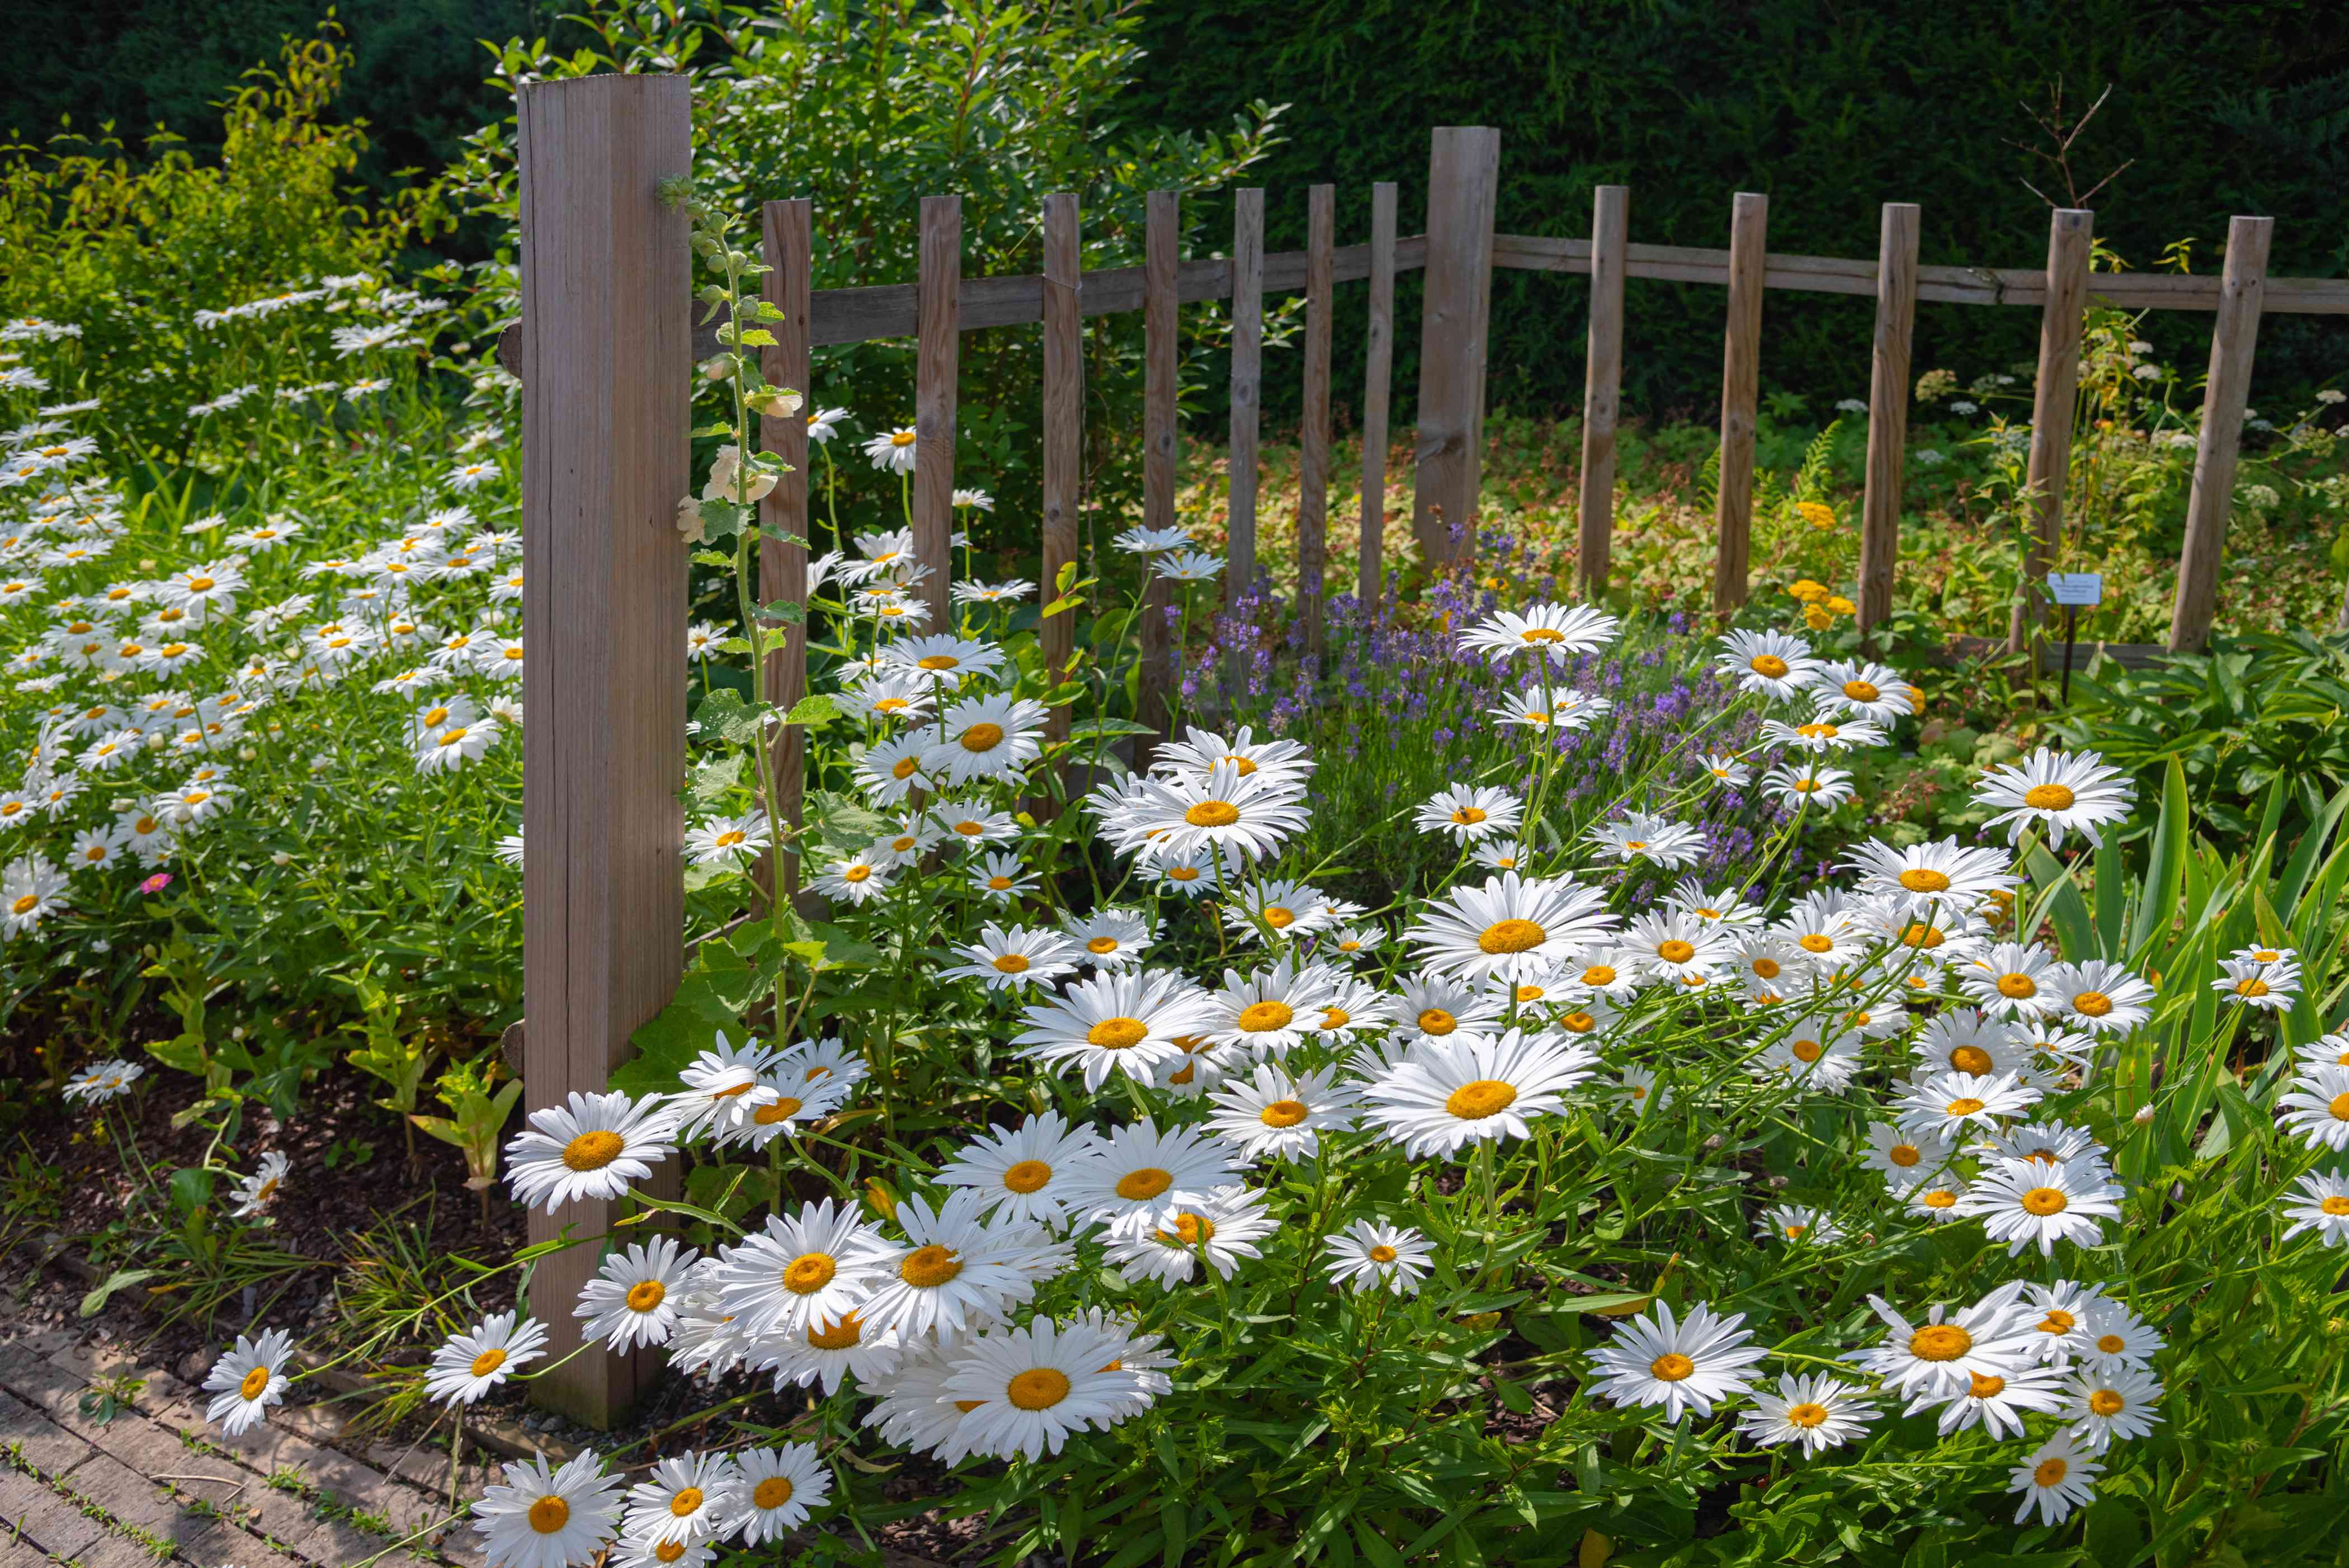 Oxeye daisy flowers with white radiating petals on side of wood fence